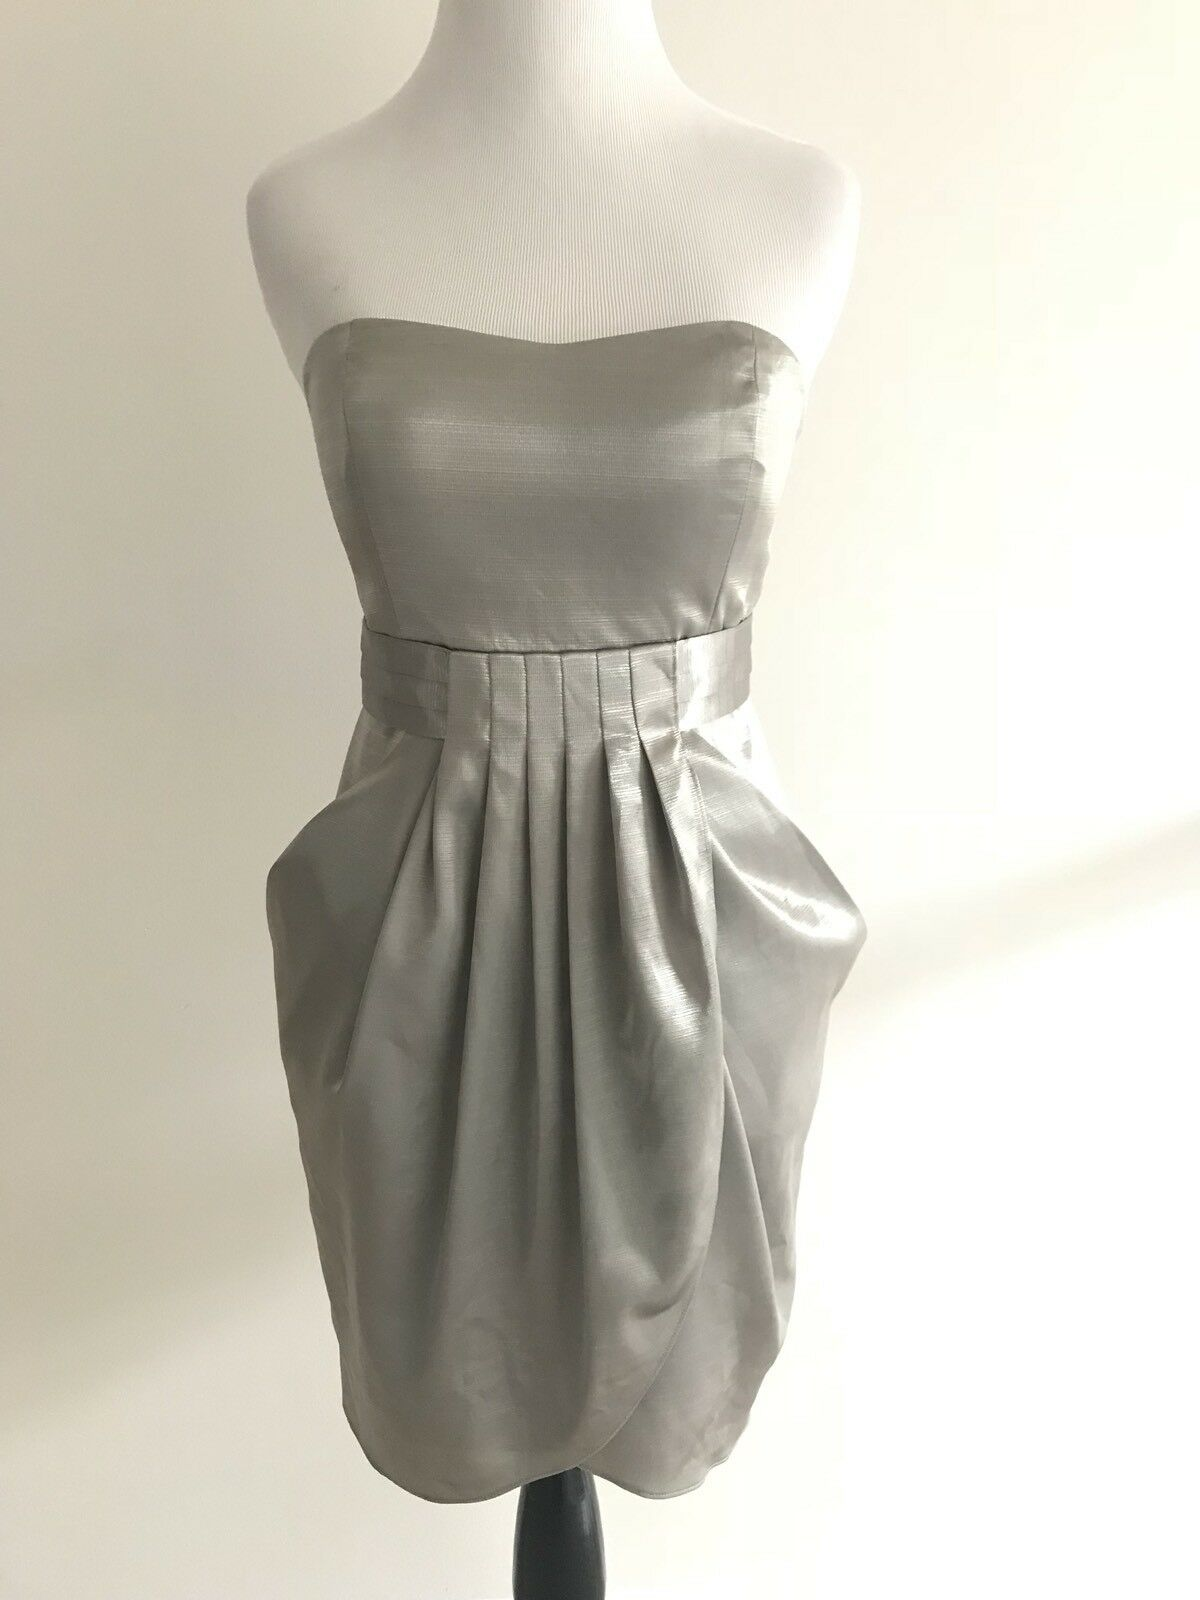 BCBGeneration A1 Womens Dress Size 2 2 2 Green Strapless Pleated Wrap Empire Waist c7e090